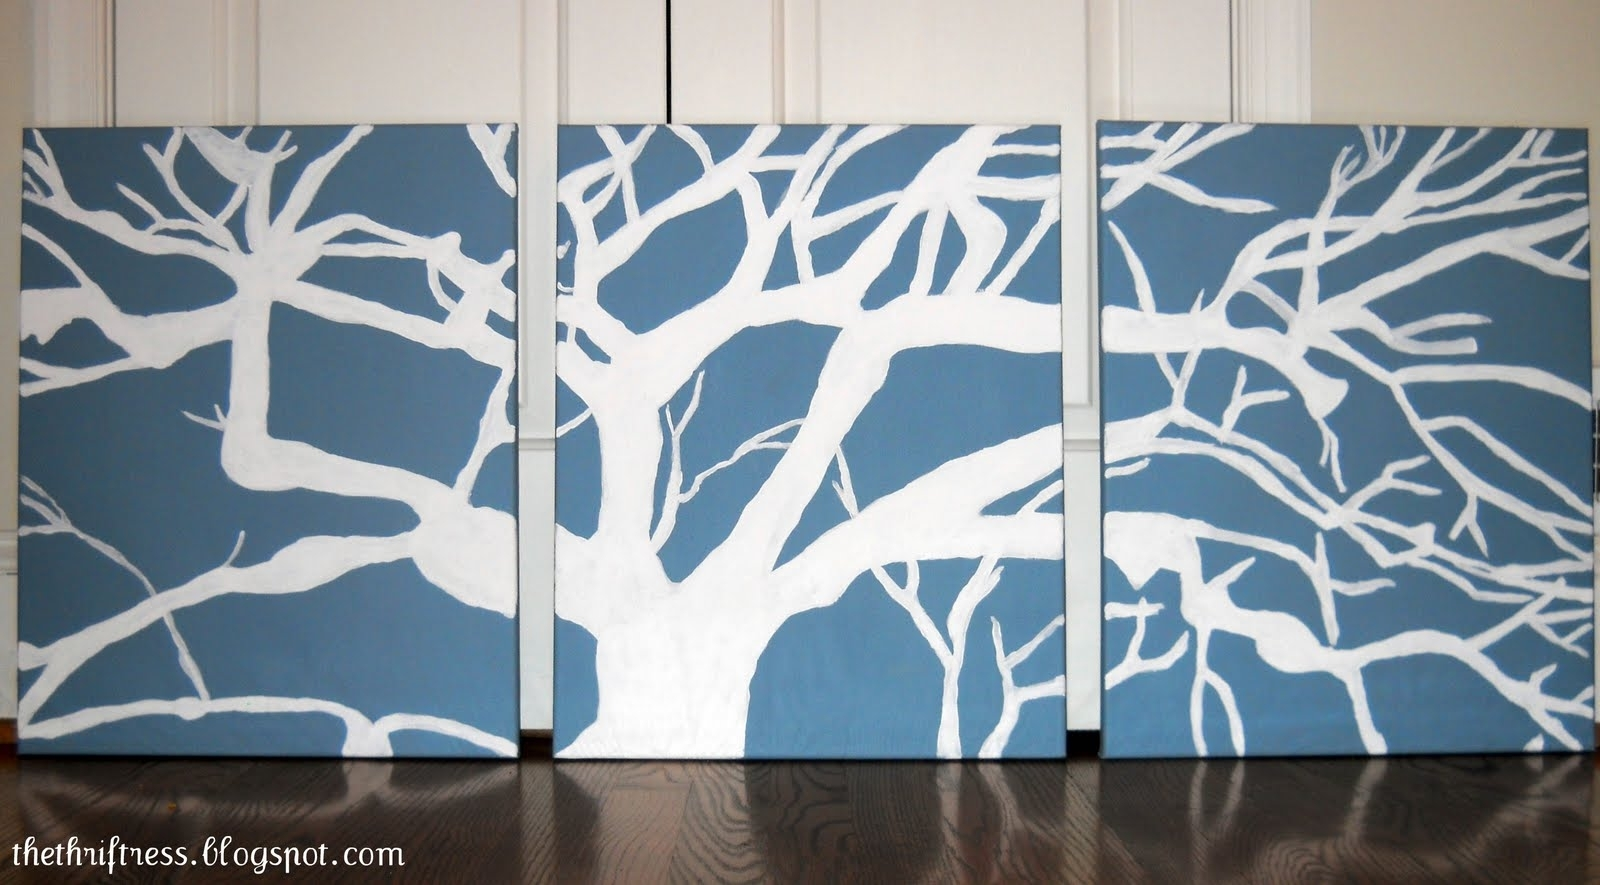 Diy Canvas Wall Art Ideas Stencils Paint – Tierra Este | #28929 Inside Most Up To Date Jcpenney Canvas Wall Art (View 2 of 15)